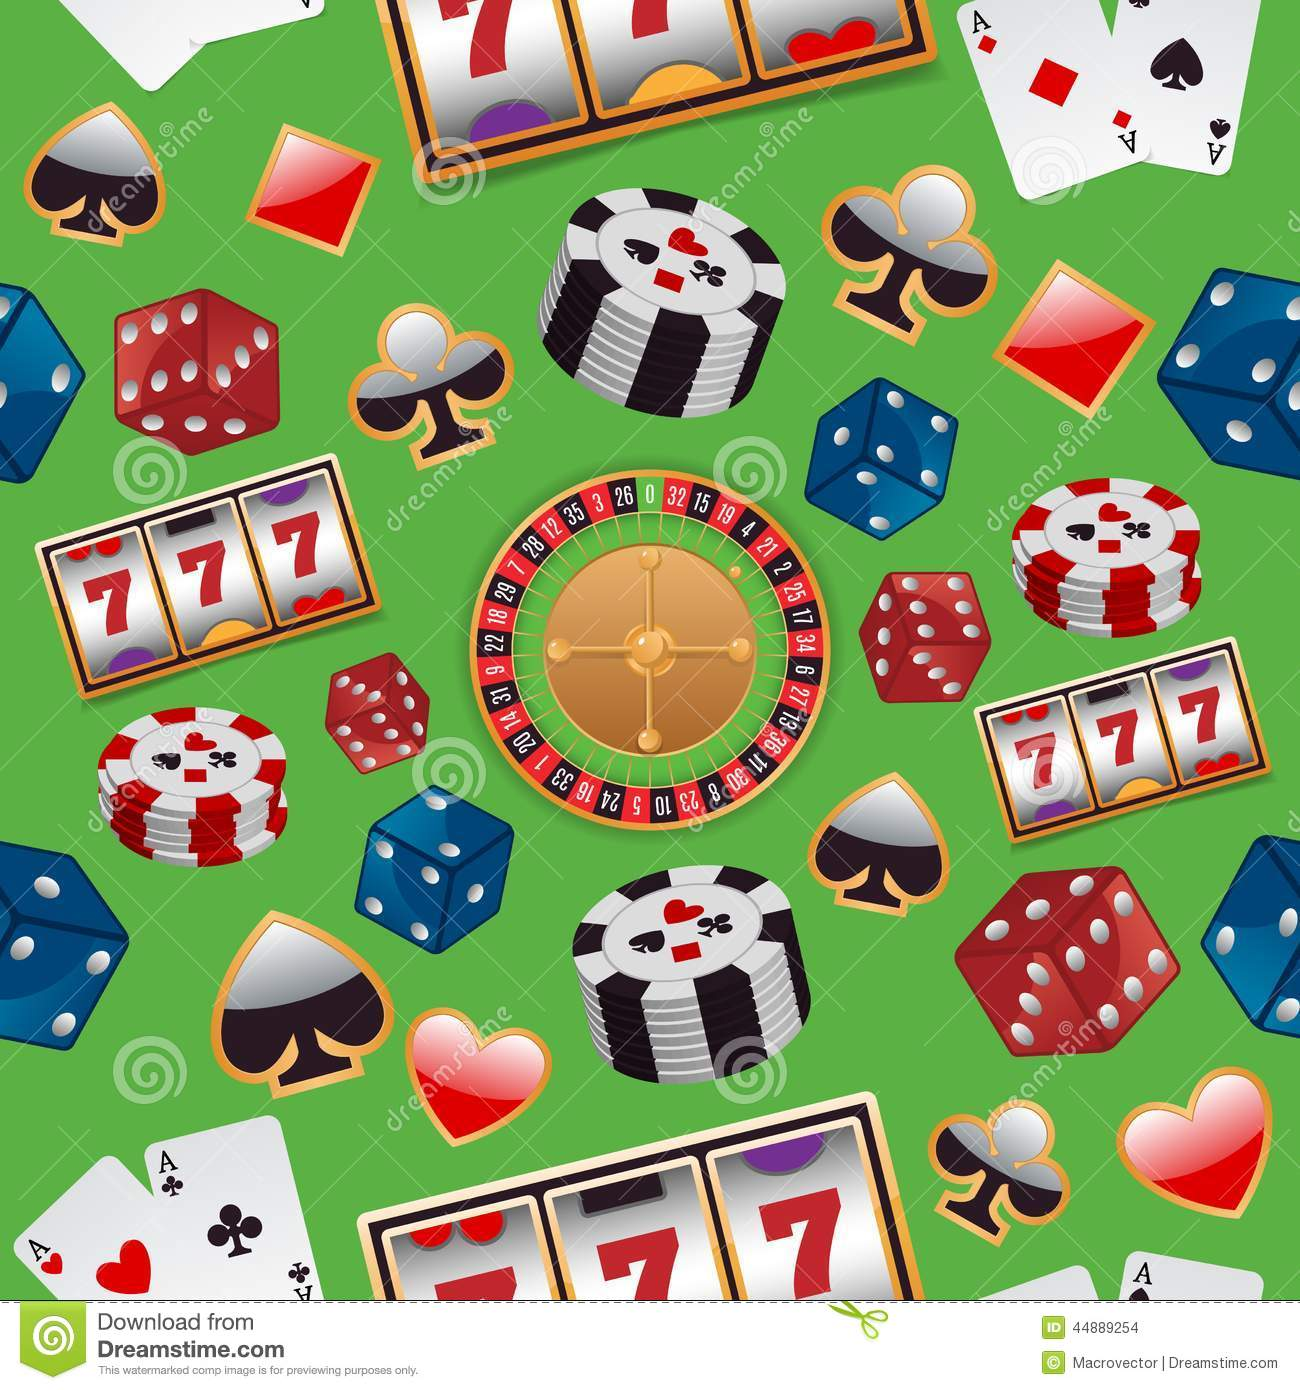 Roulette betting patterns